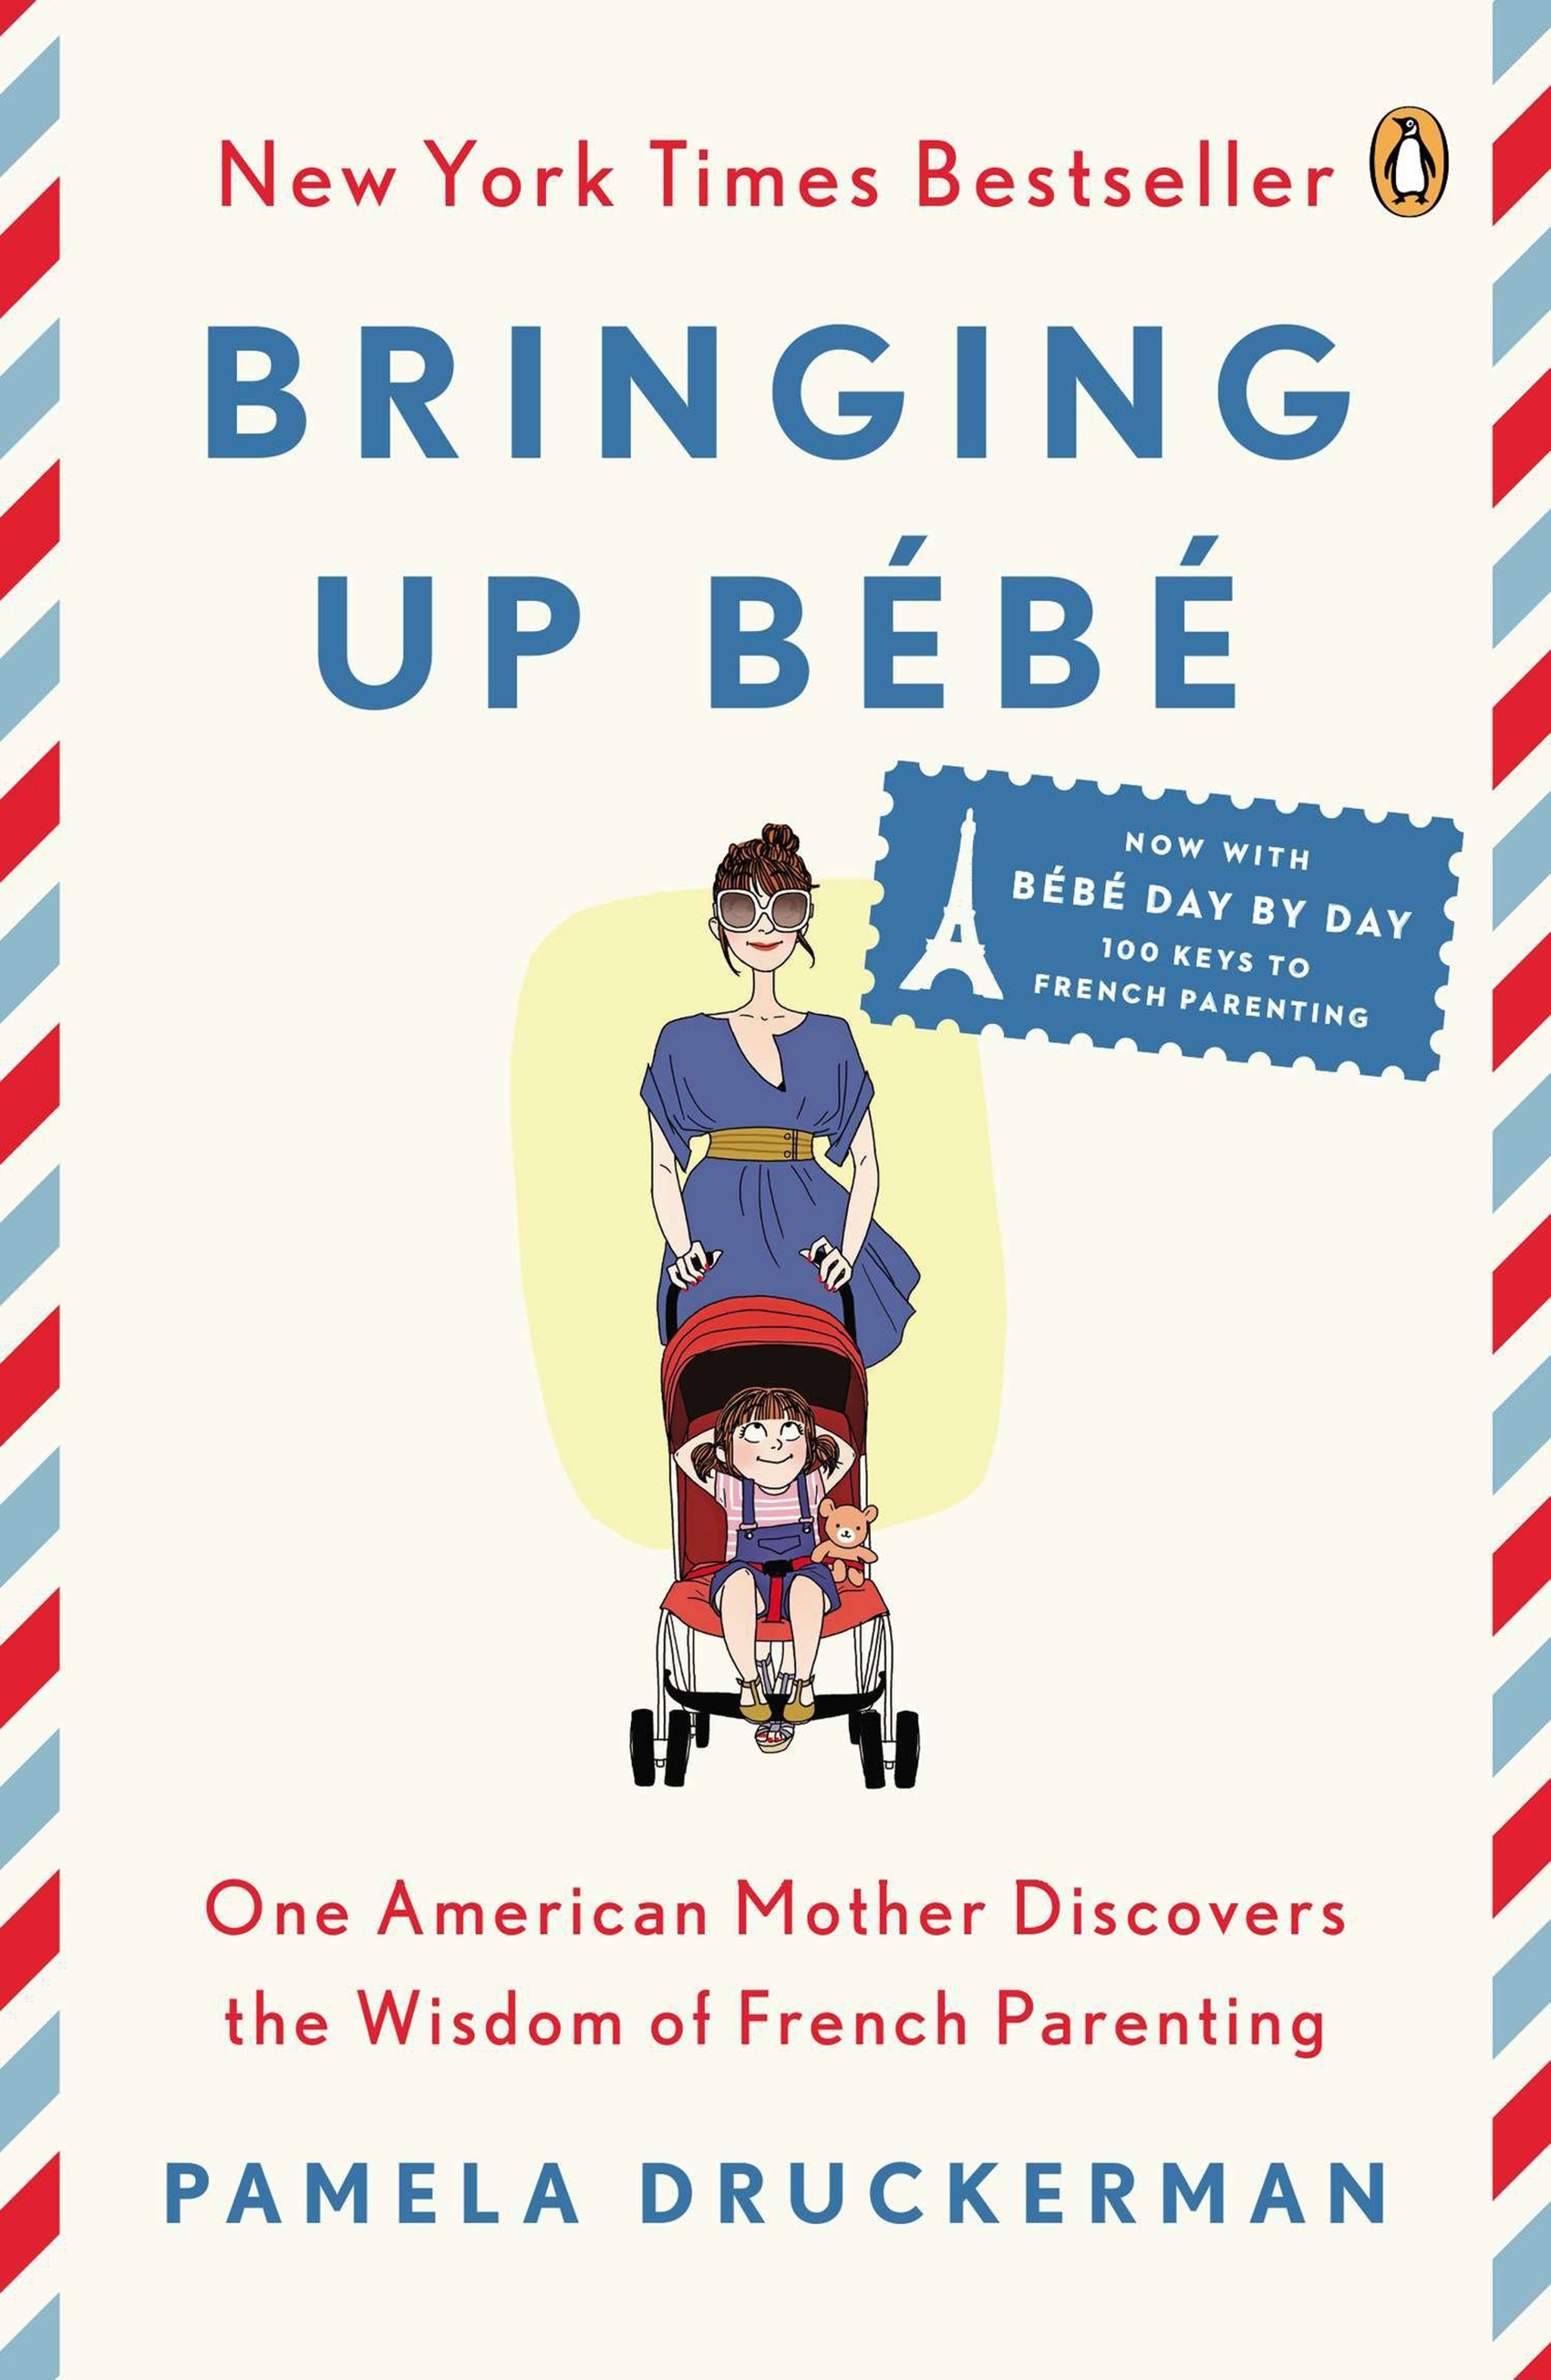 Bringing up Bebe - My go-to guide for relaxed parenting!